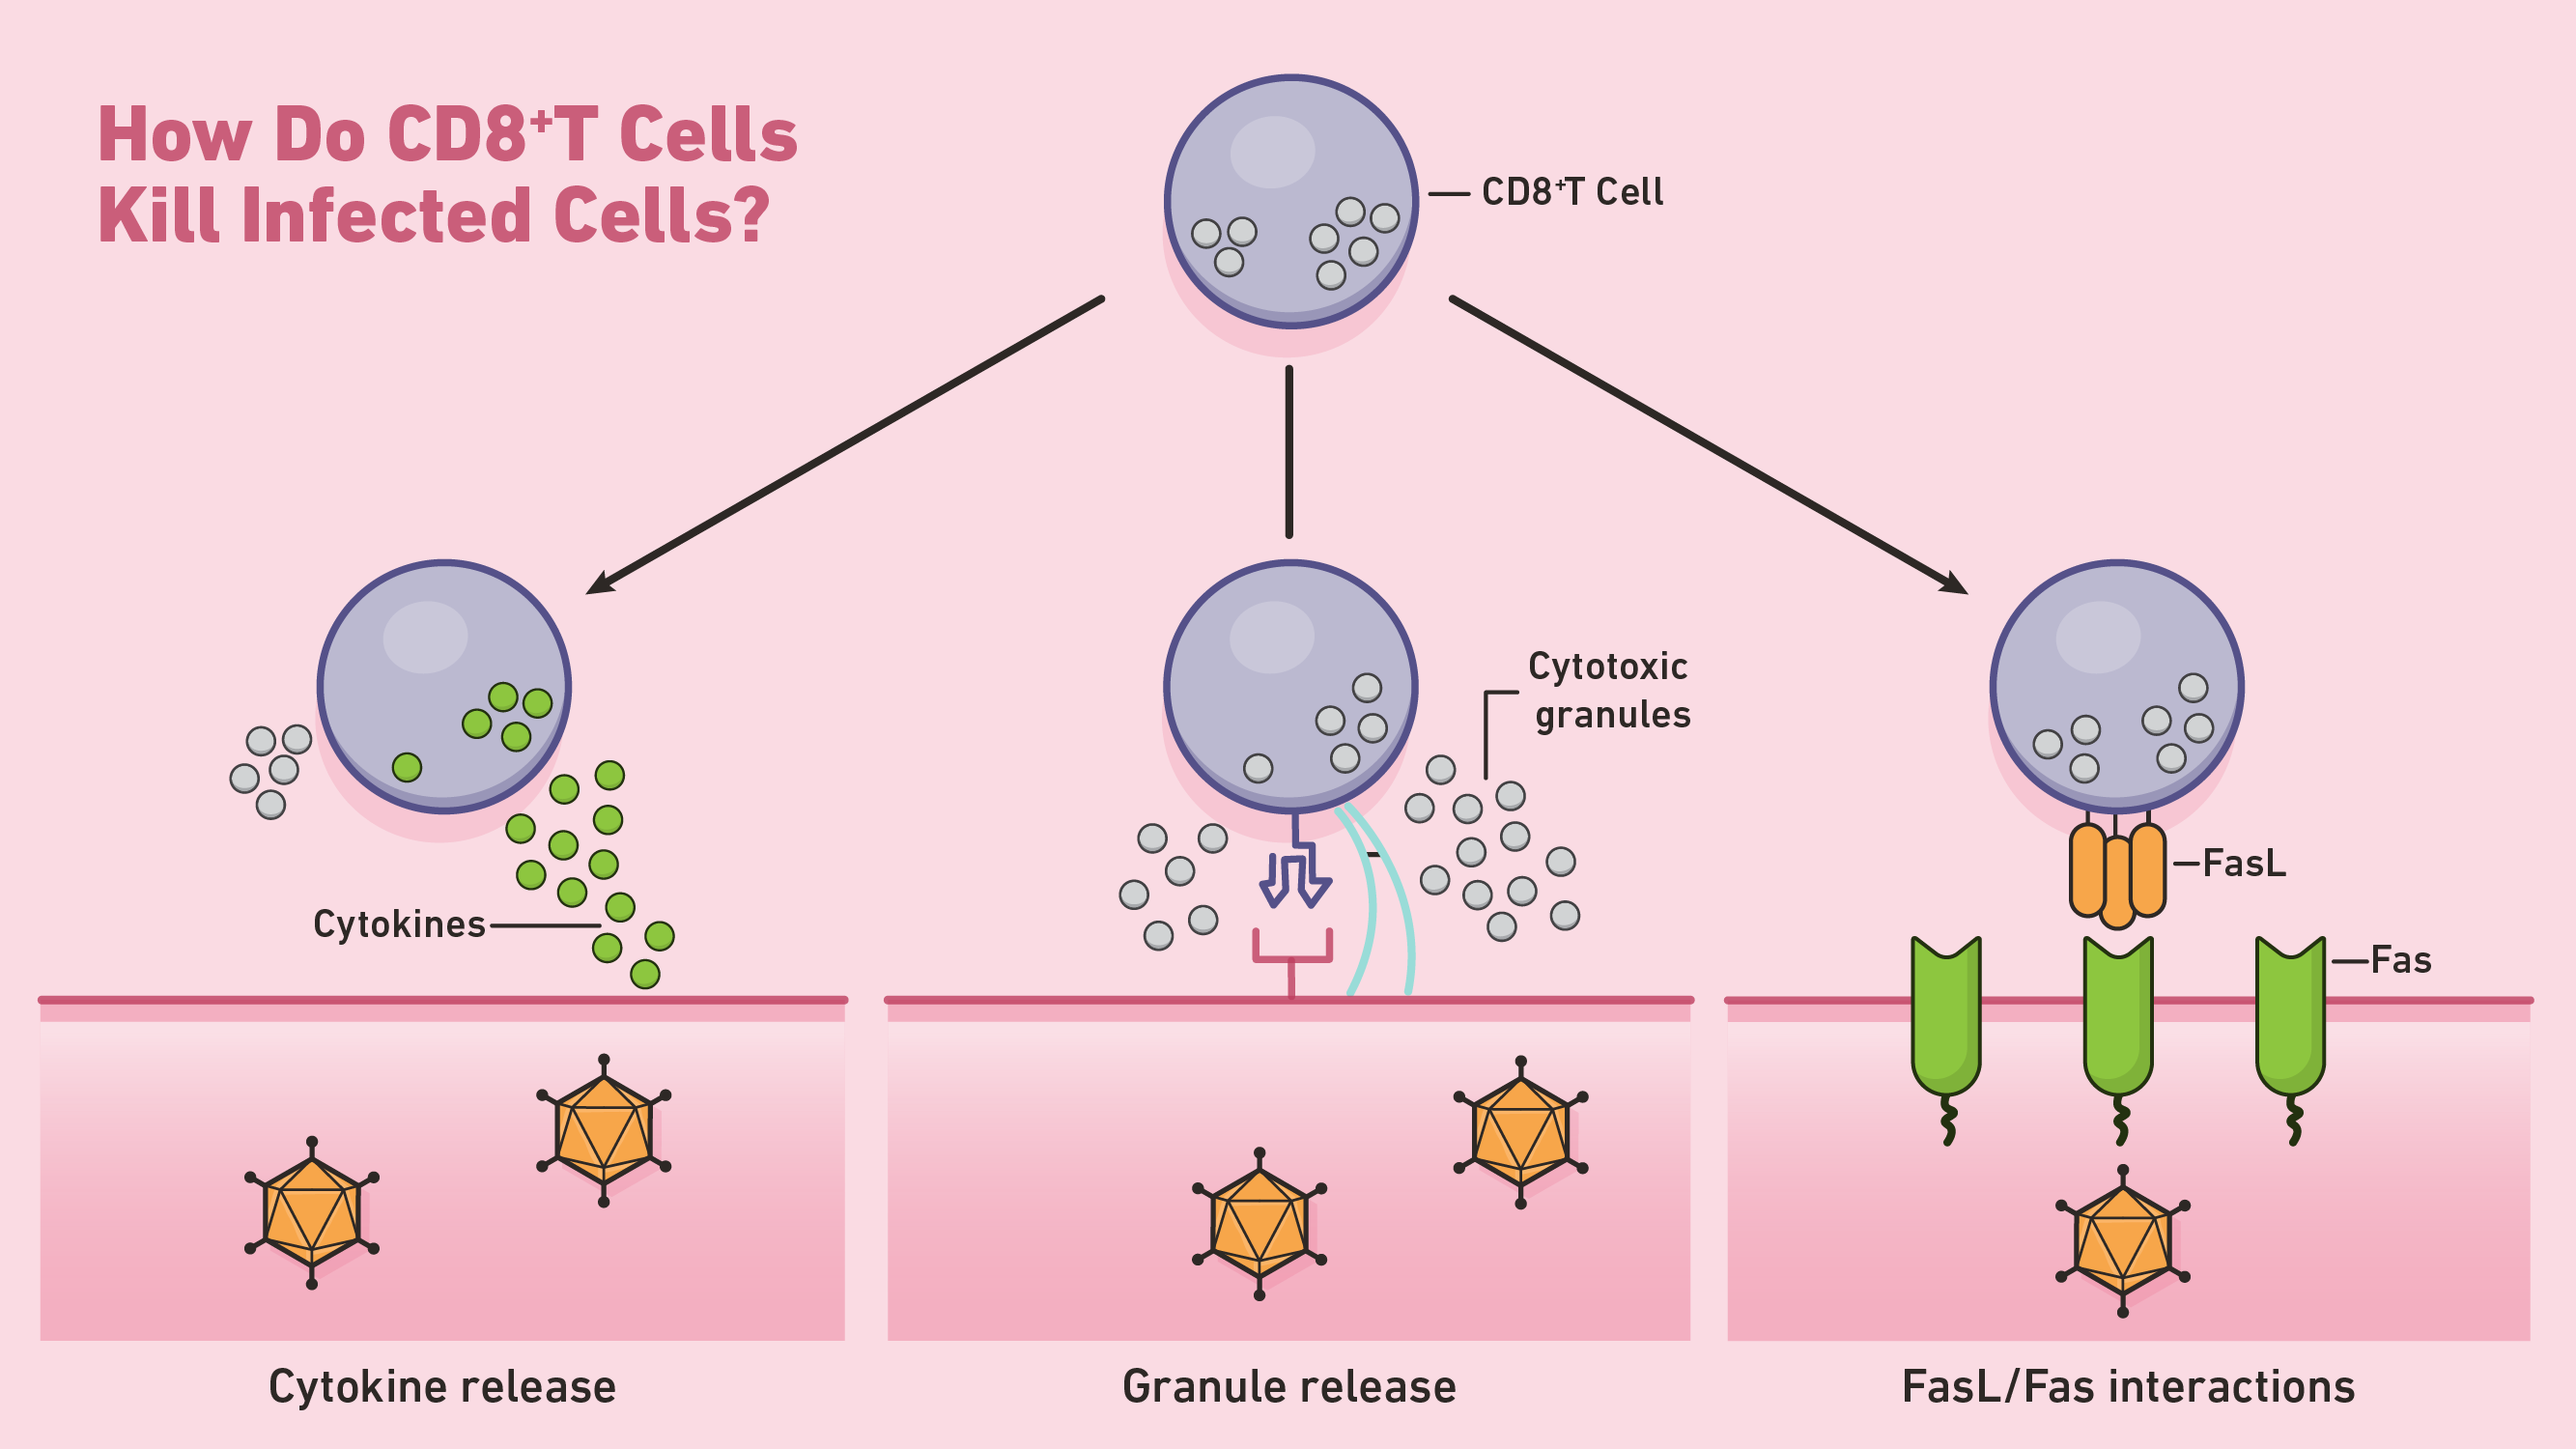 An image showing different types of cell killing mediated by CD8+ T Cells